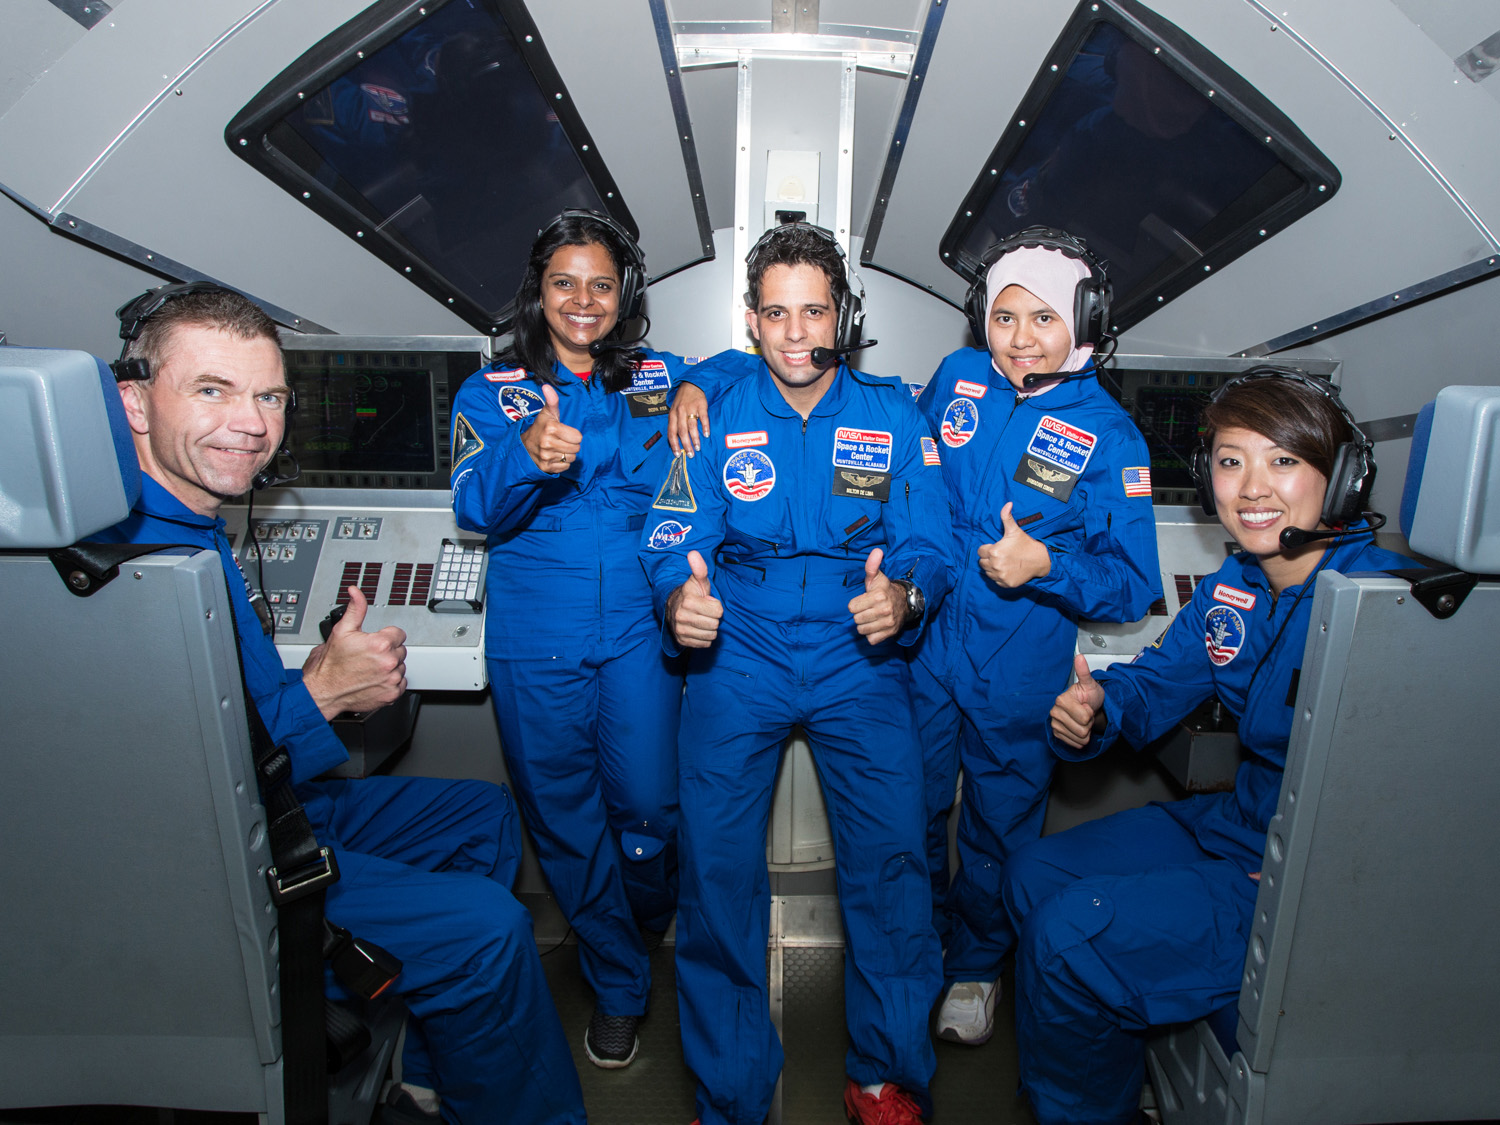 Teachers, we have liftoff! Honeywell Educators at Space Academy puts you in the pilot's seat during real-life astronaut training at the U.S. Space & Rocket Center.